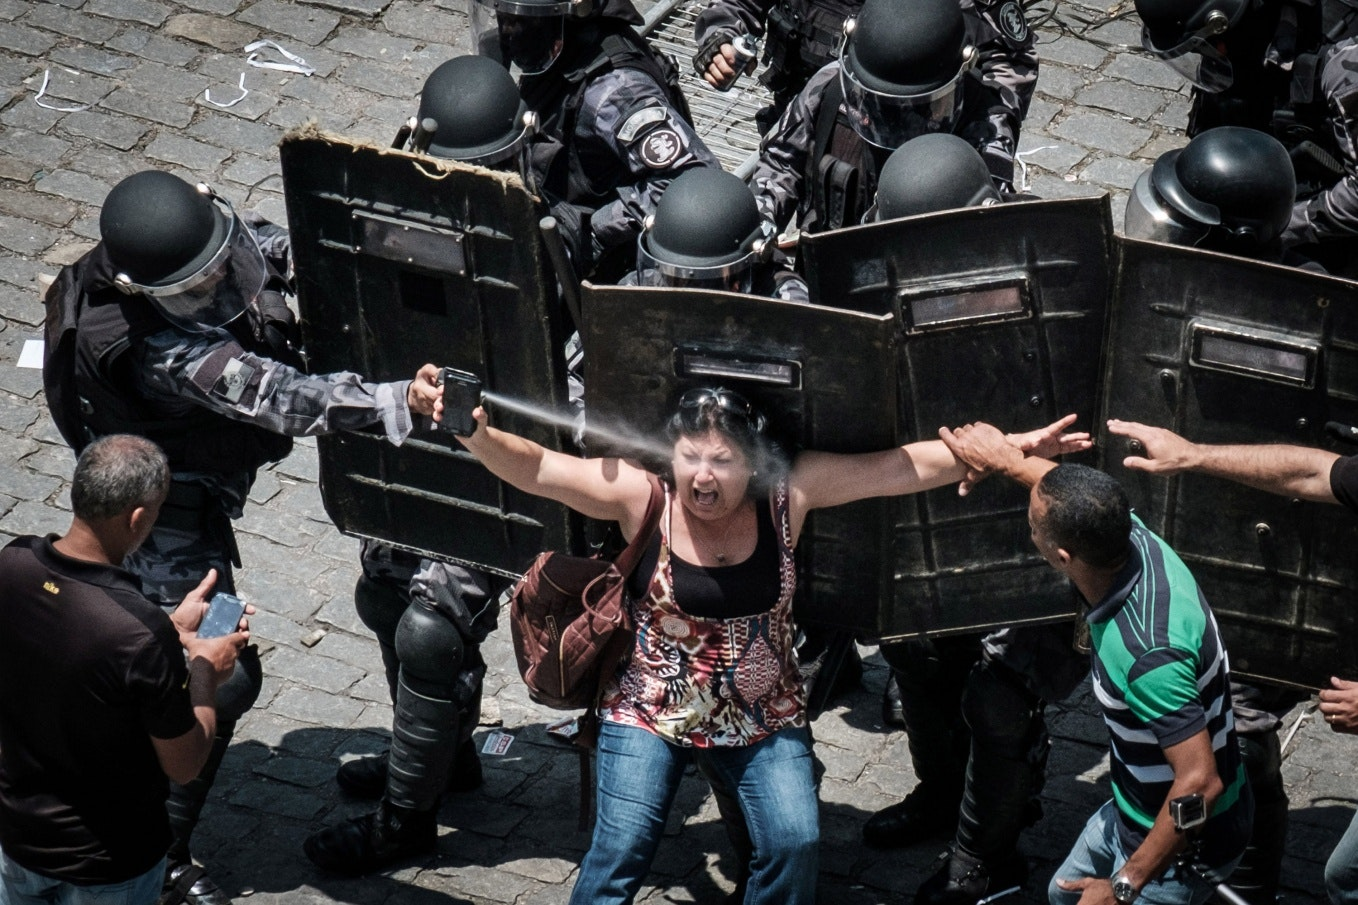 A riot police officer spraying a woman in the face with pepper spray